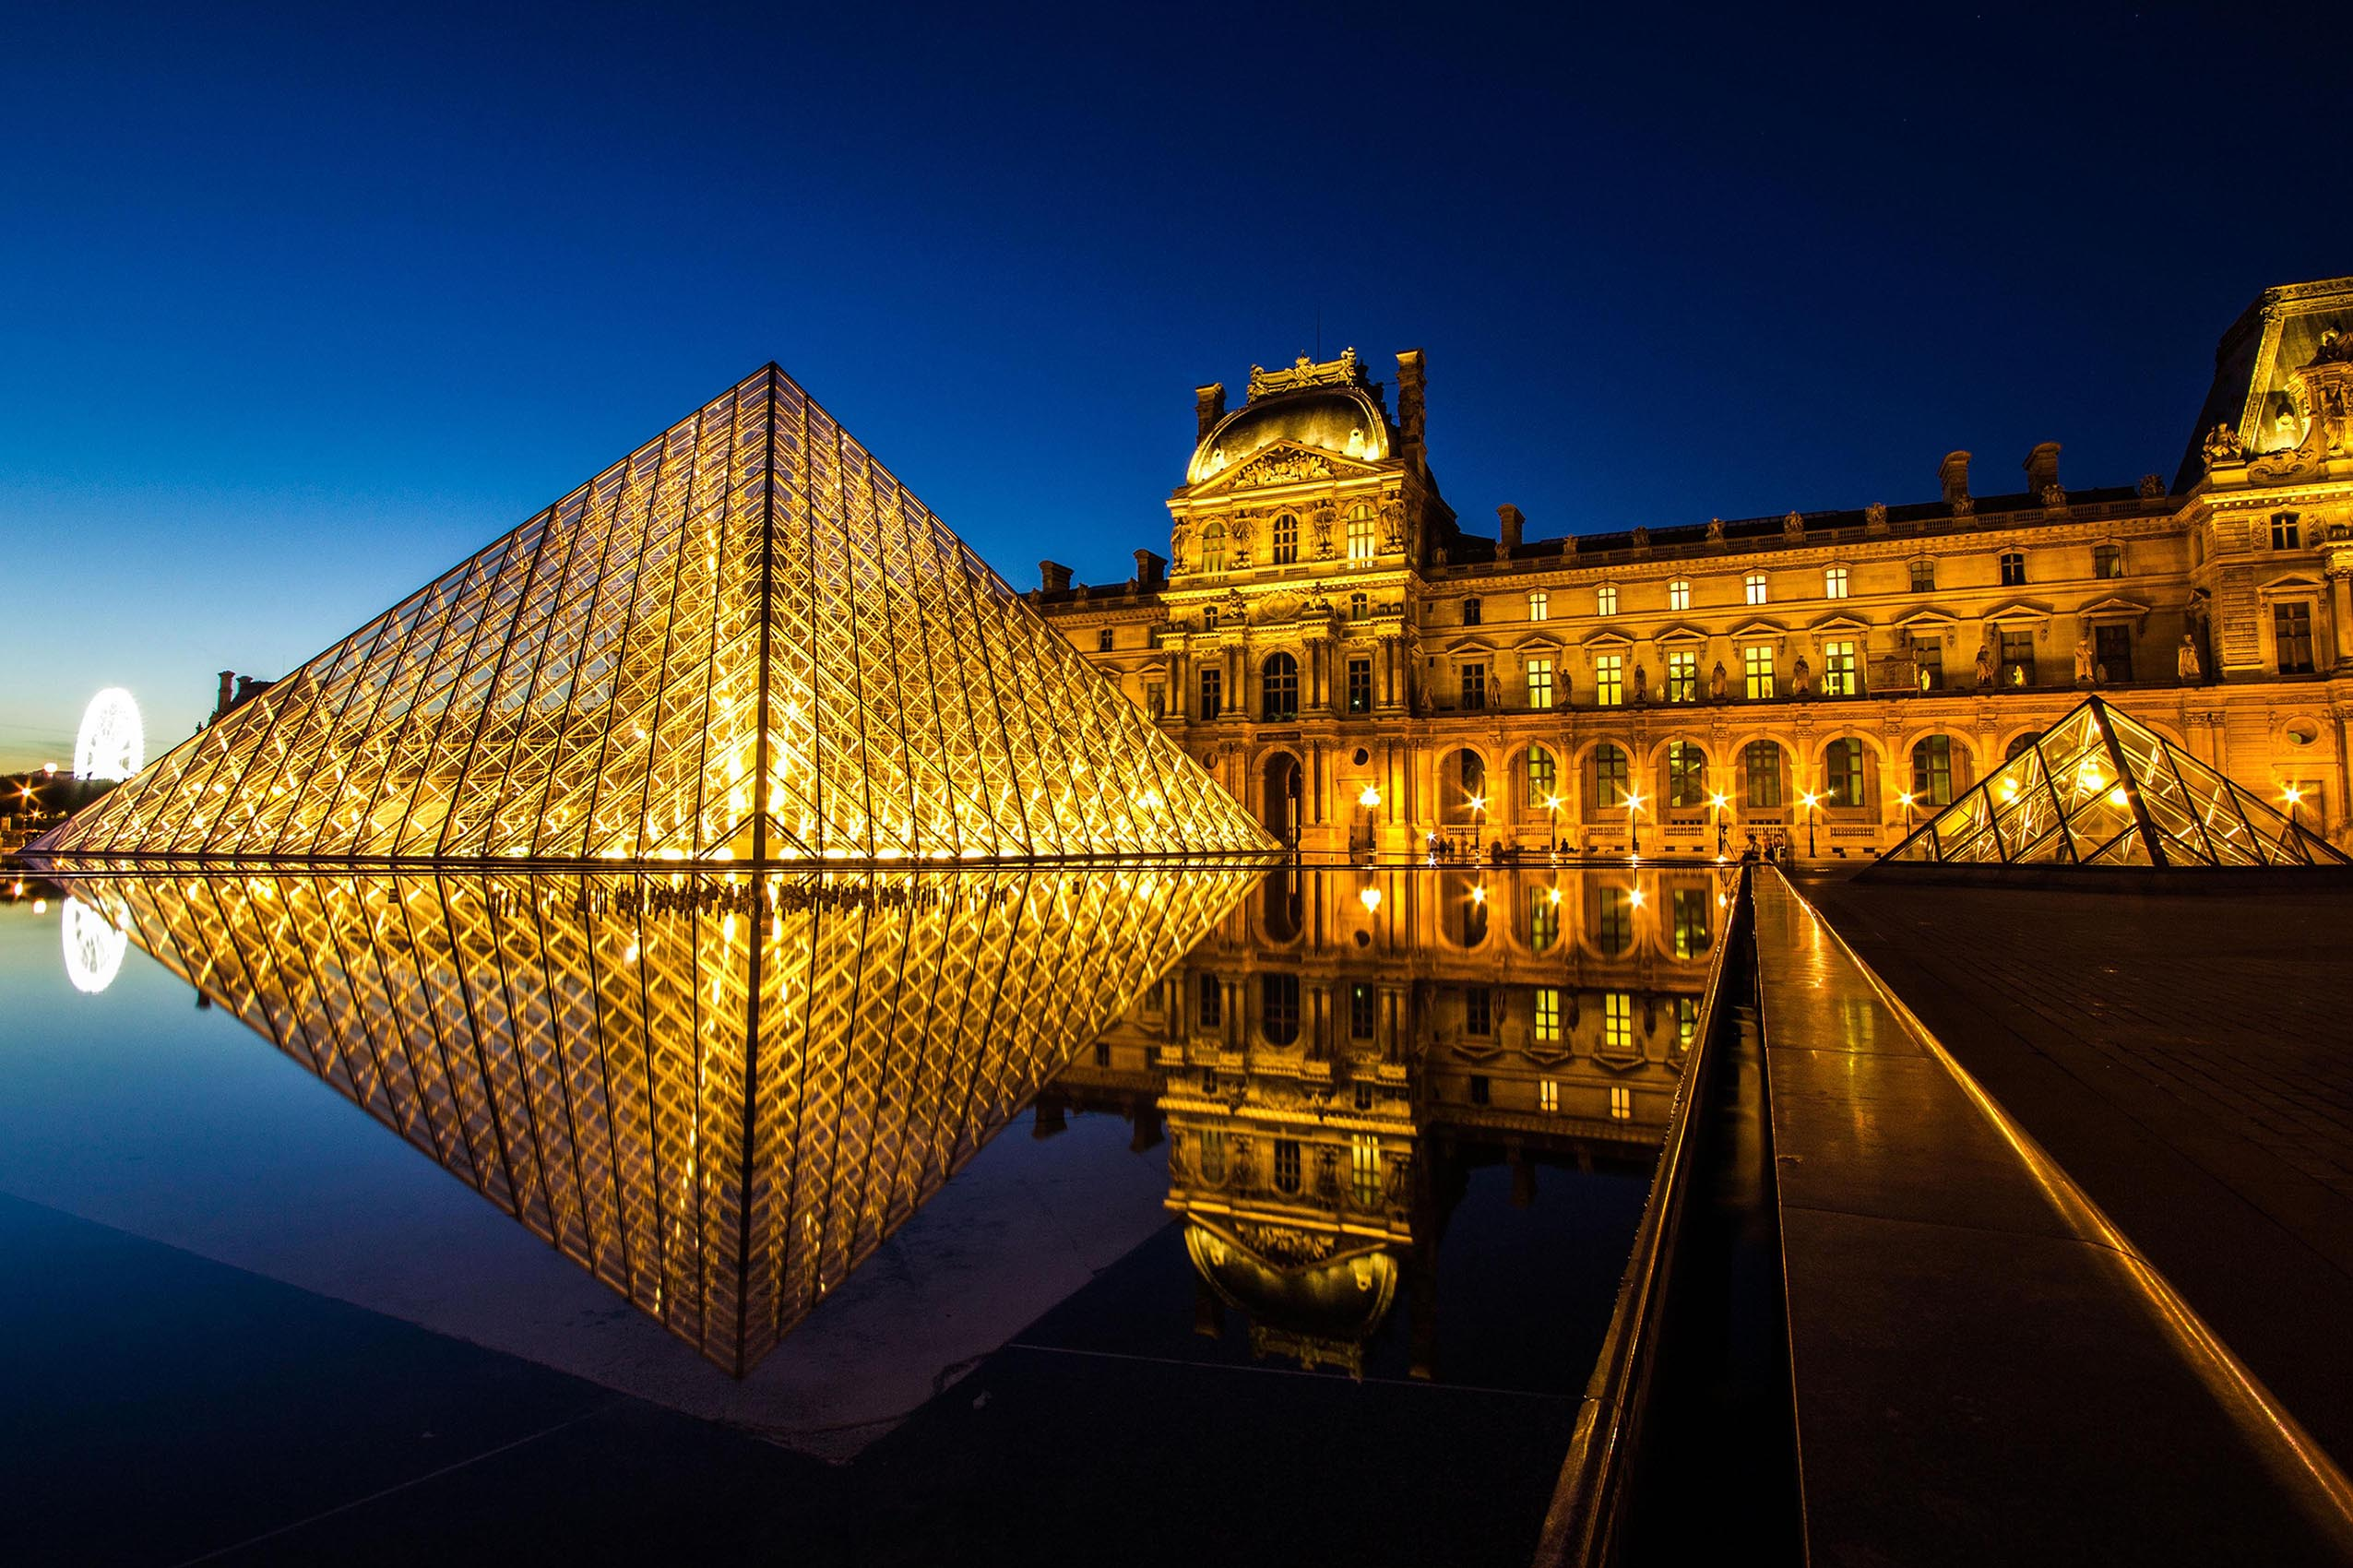 parigi-louvre-museum-at-night